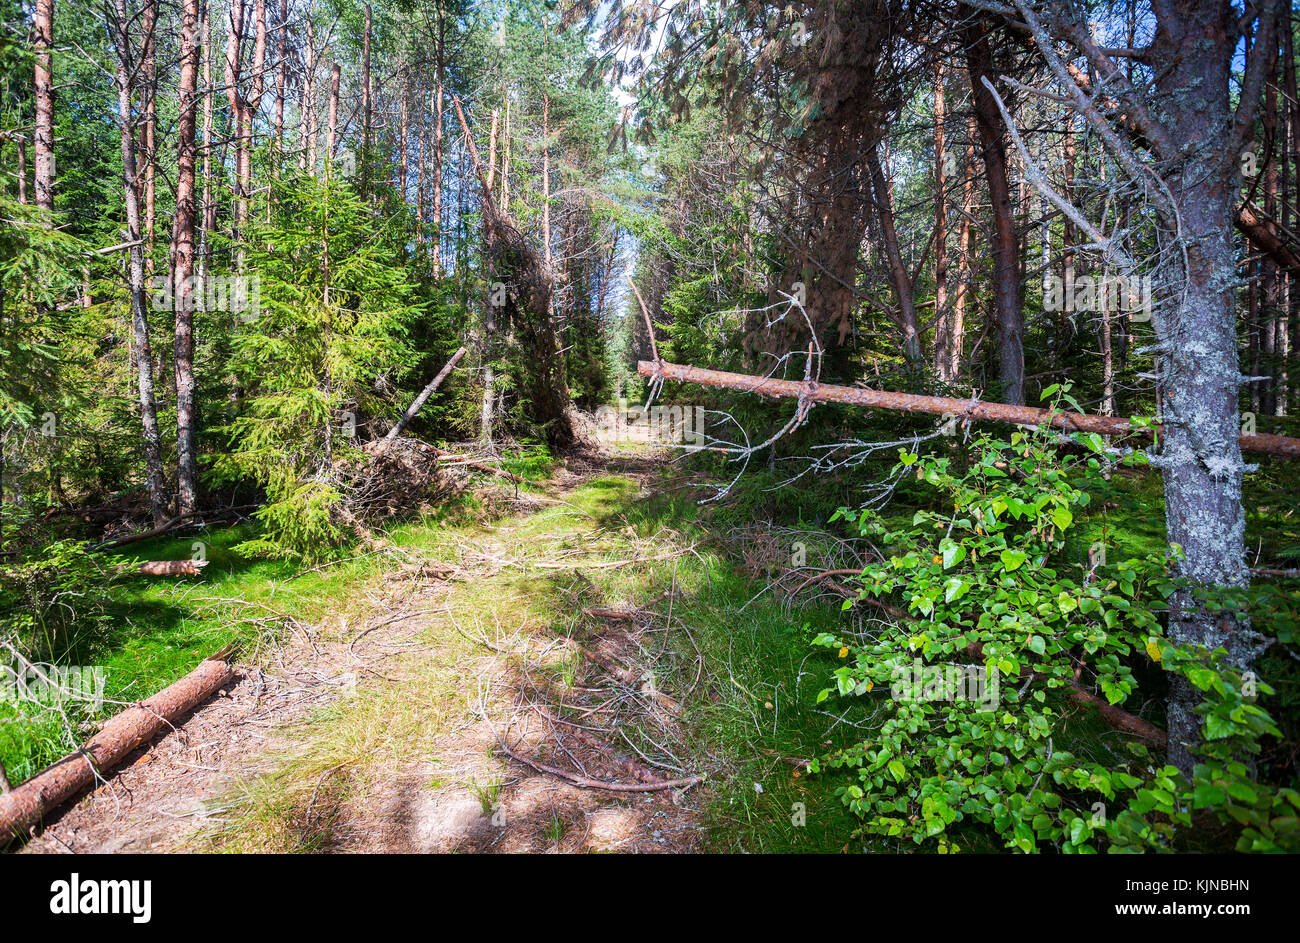 Deep forest with green spruces and pine trees in summertime. Wild flora and nature of Northern Europe - Stock Image